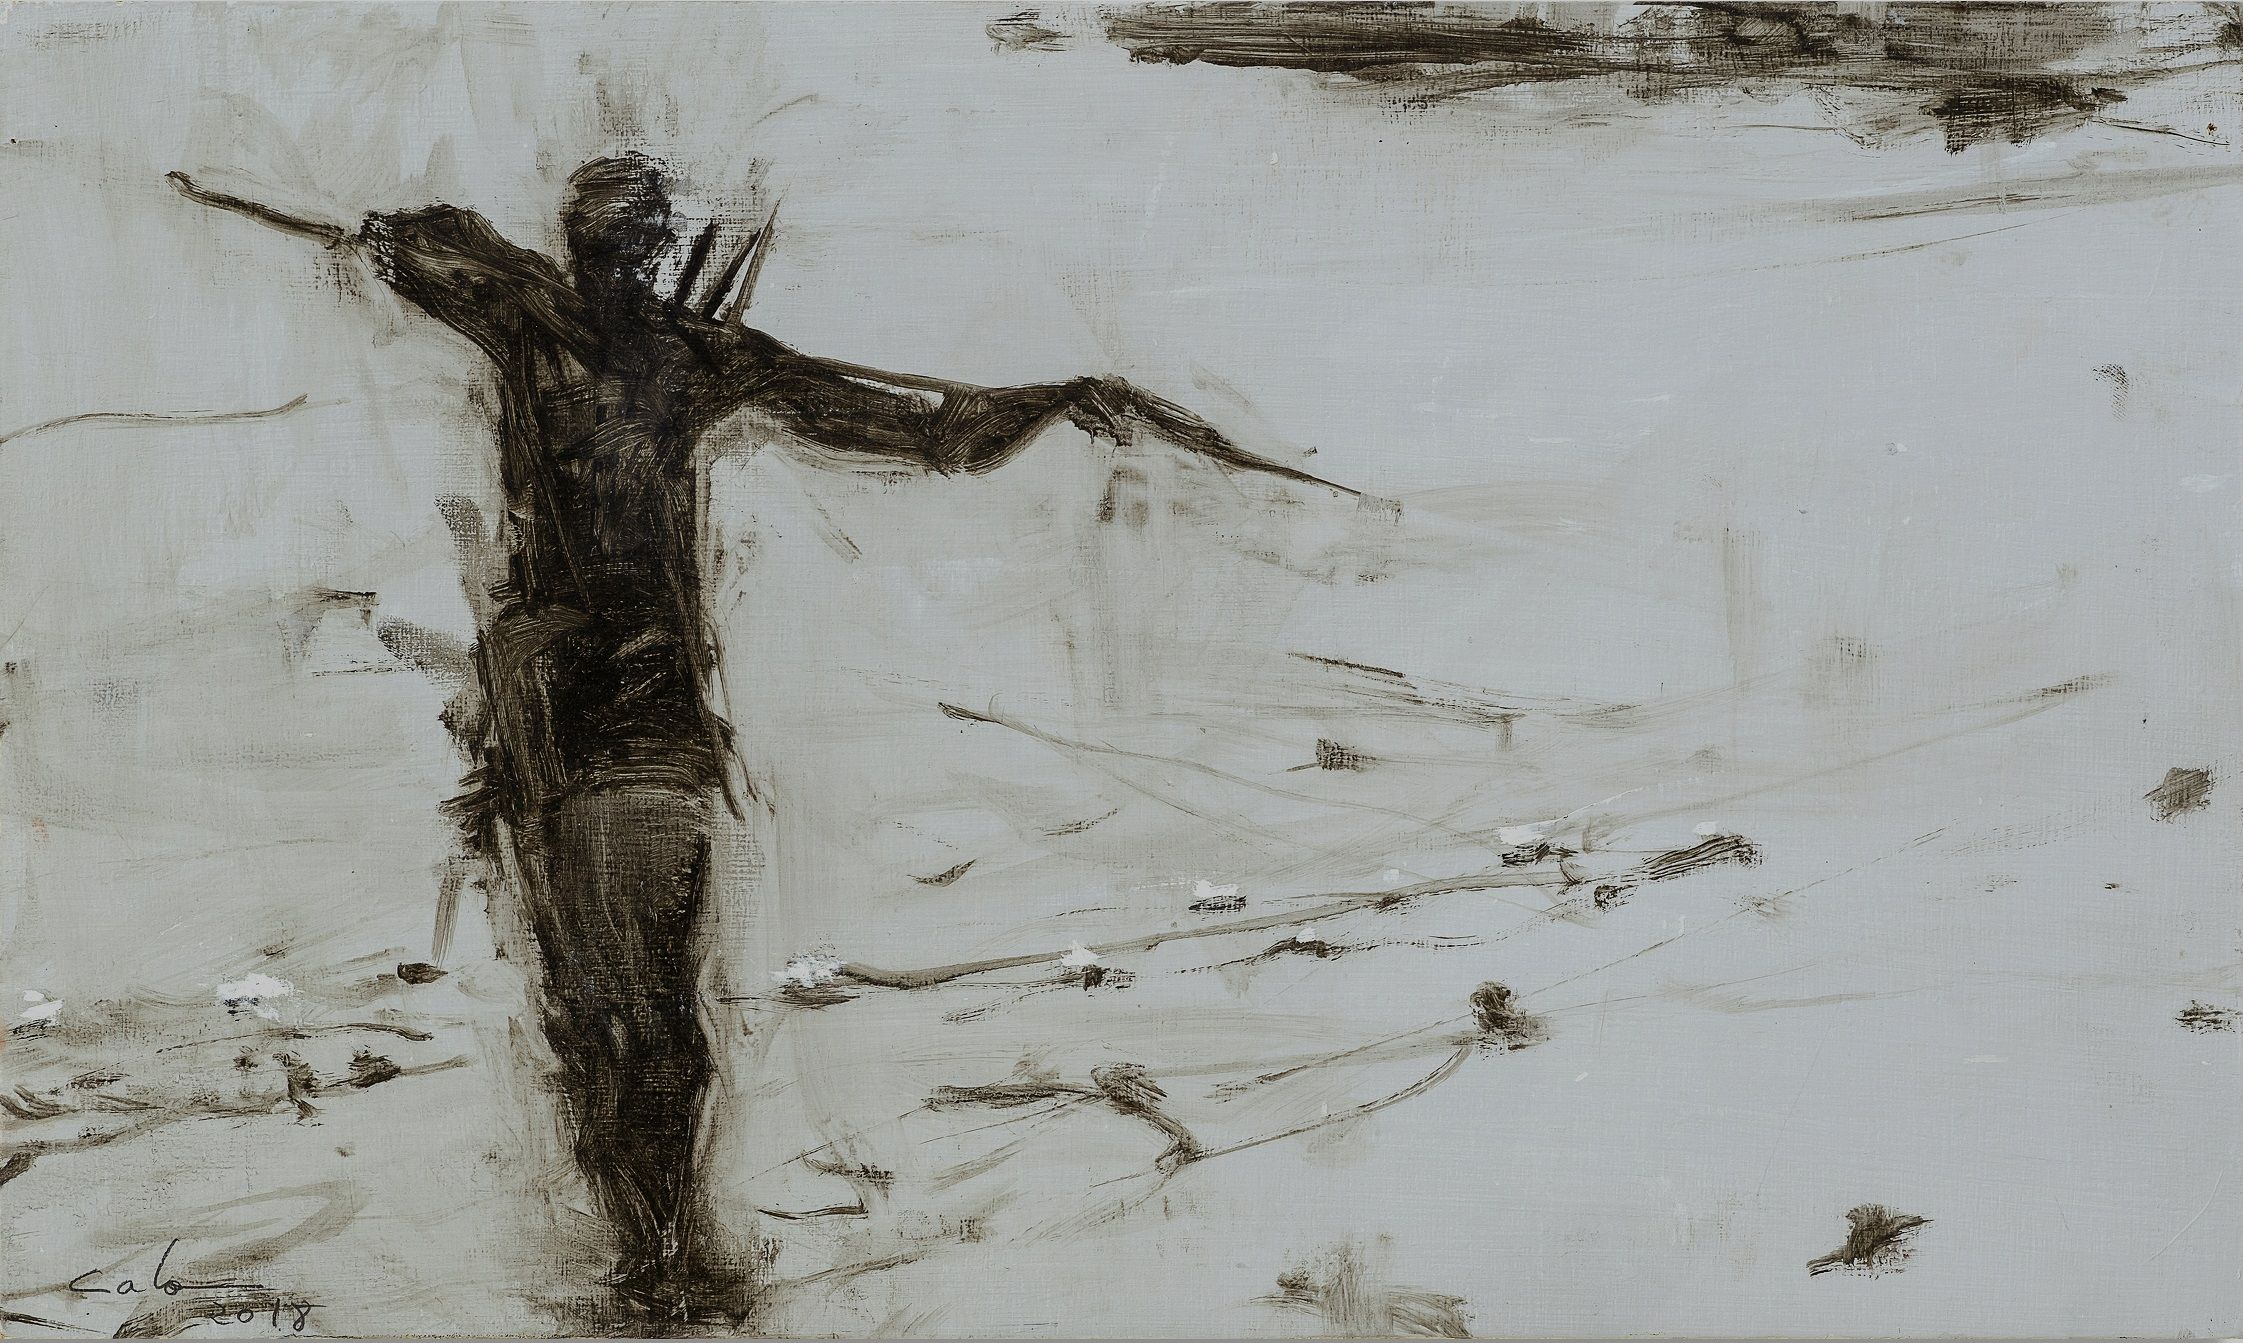 Pescador de tabla V, Tanzania series,Calo  Carratalá,Contemporary painting